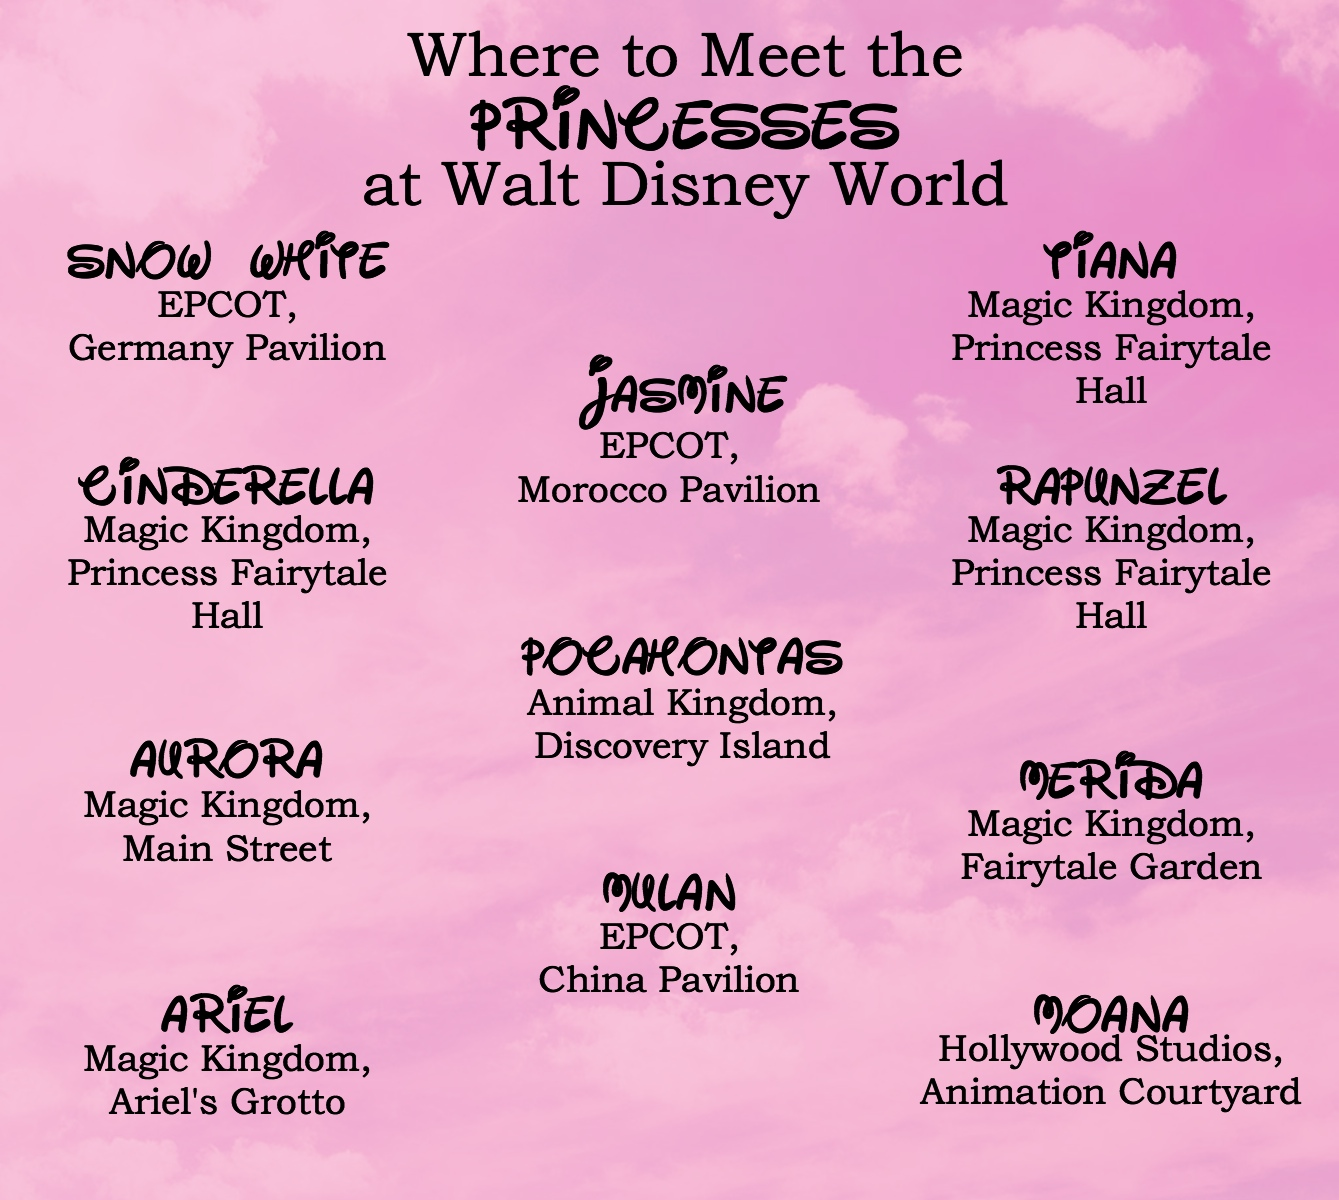 Disney darling where to meet the disney princesses here is a cheat sheet m4hsunfo